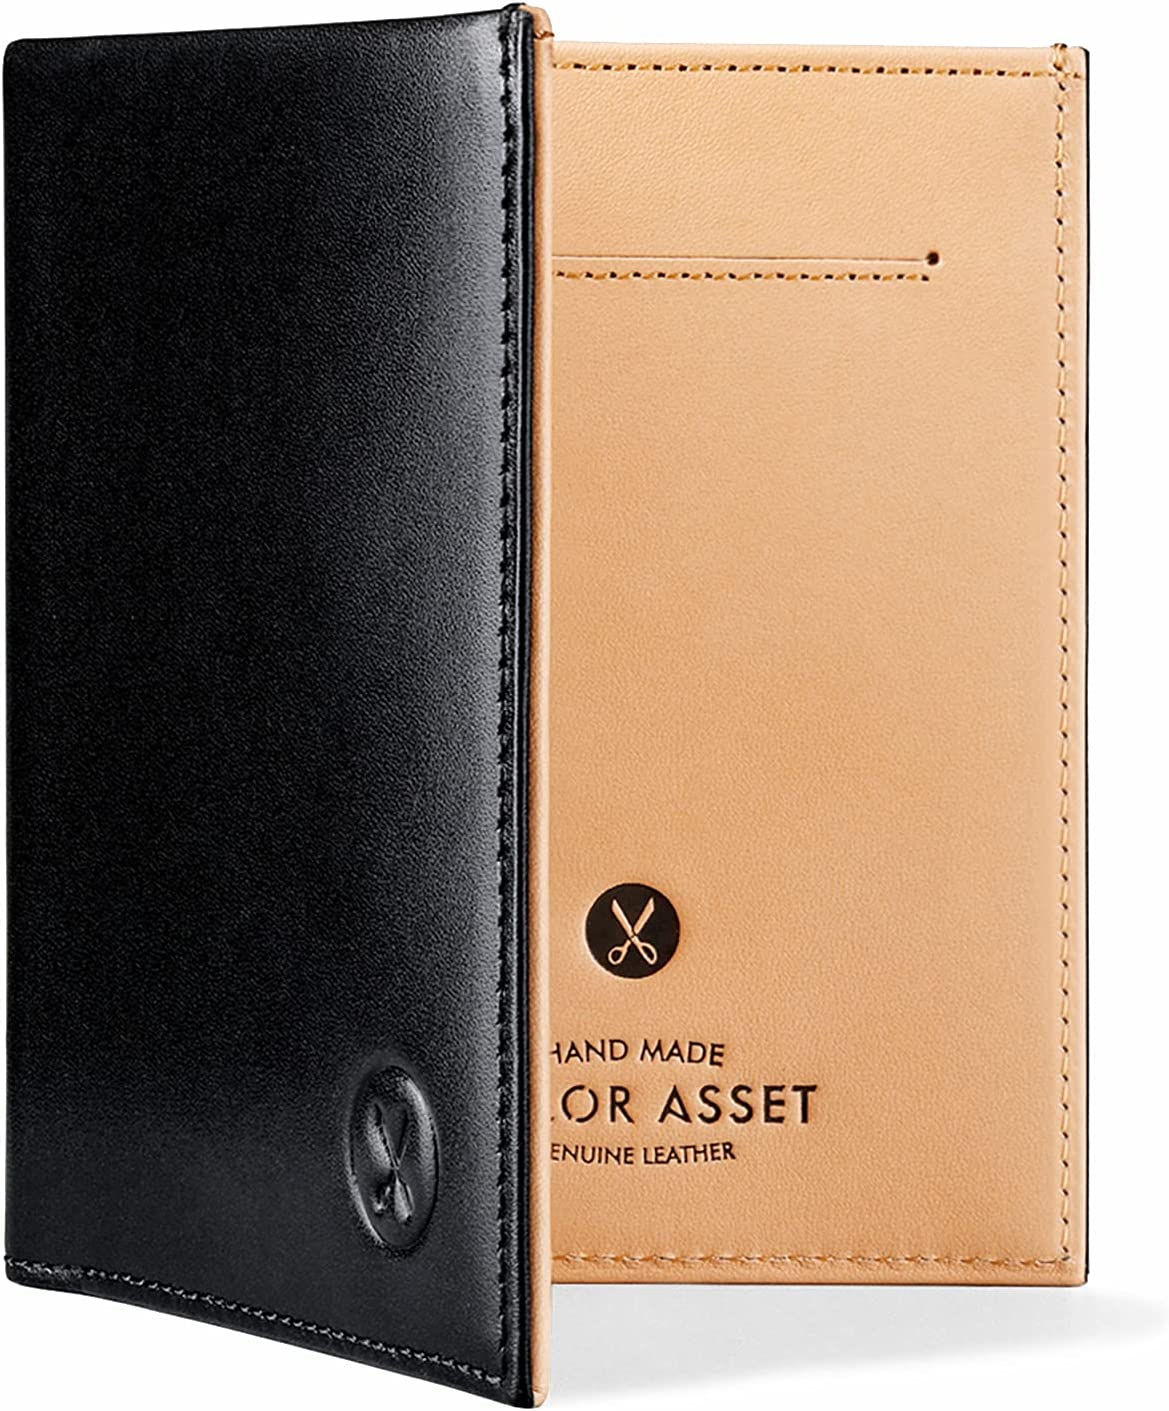 Tailor Asset SUIT high-end specialized bifold wallet for men full-grain genuine leather LIMITED EDITION